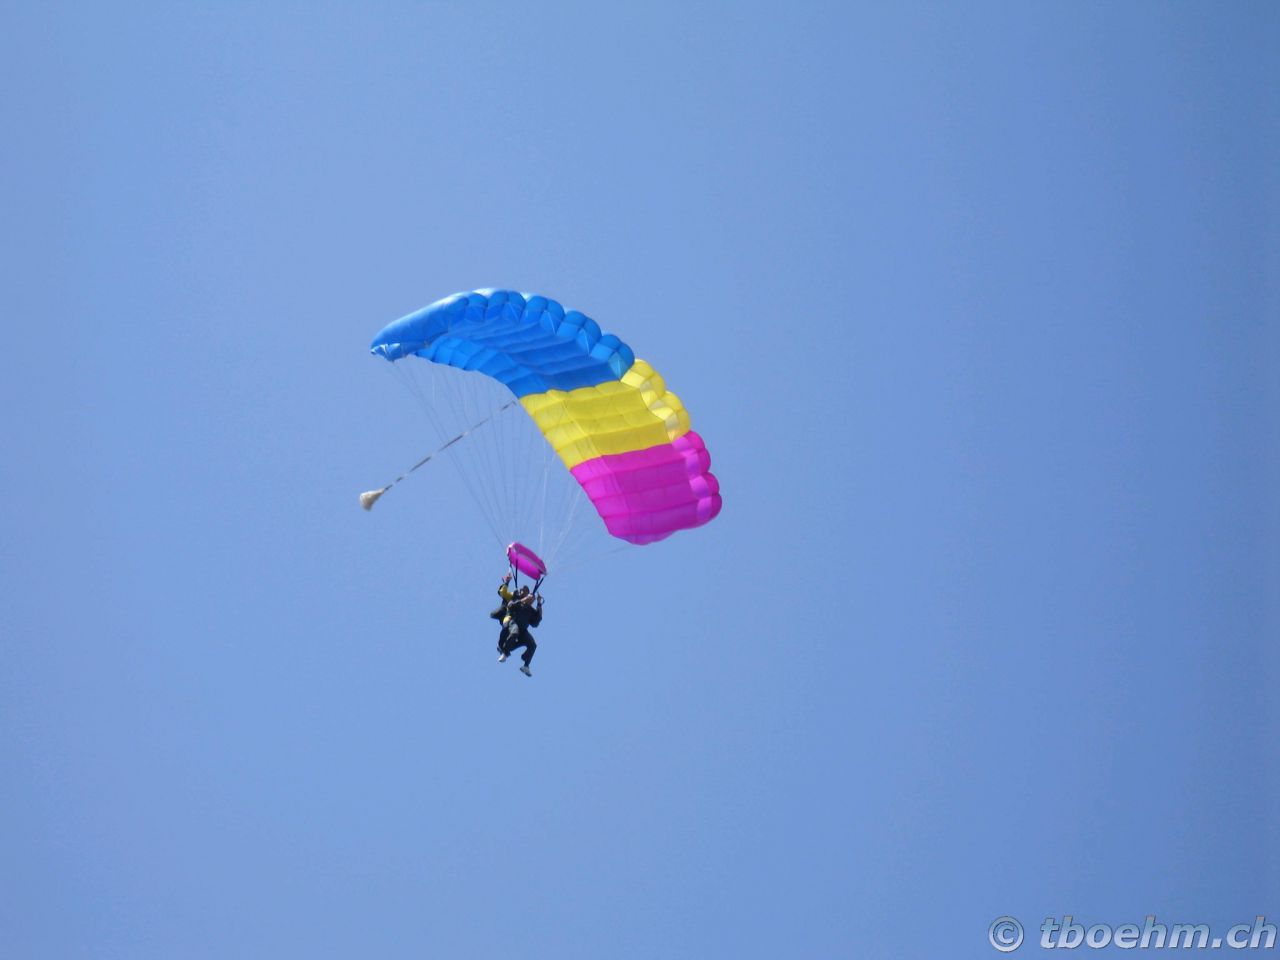 skydive_grenchen_16_07_2006_24_20121125_1967277524